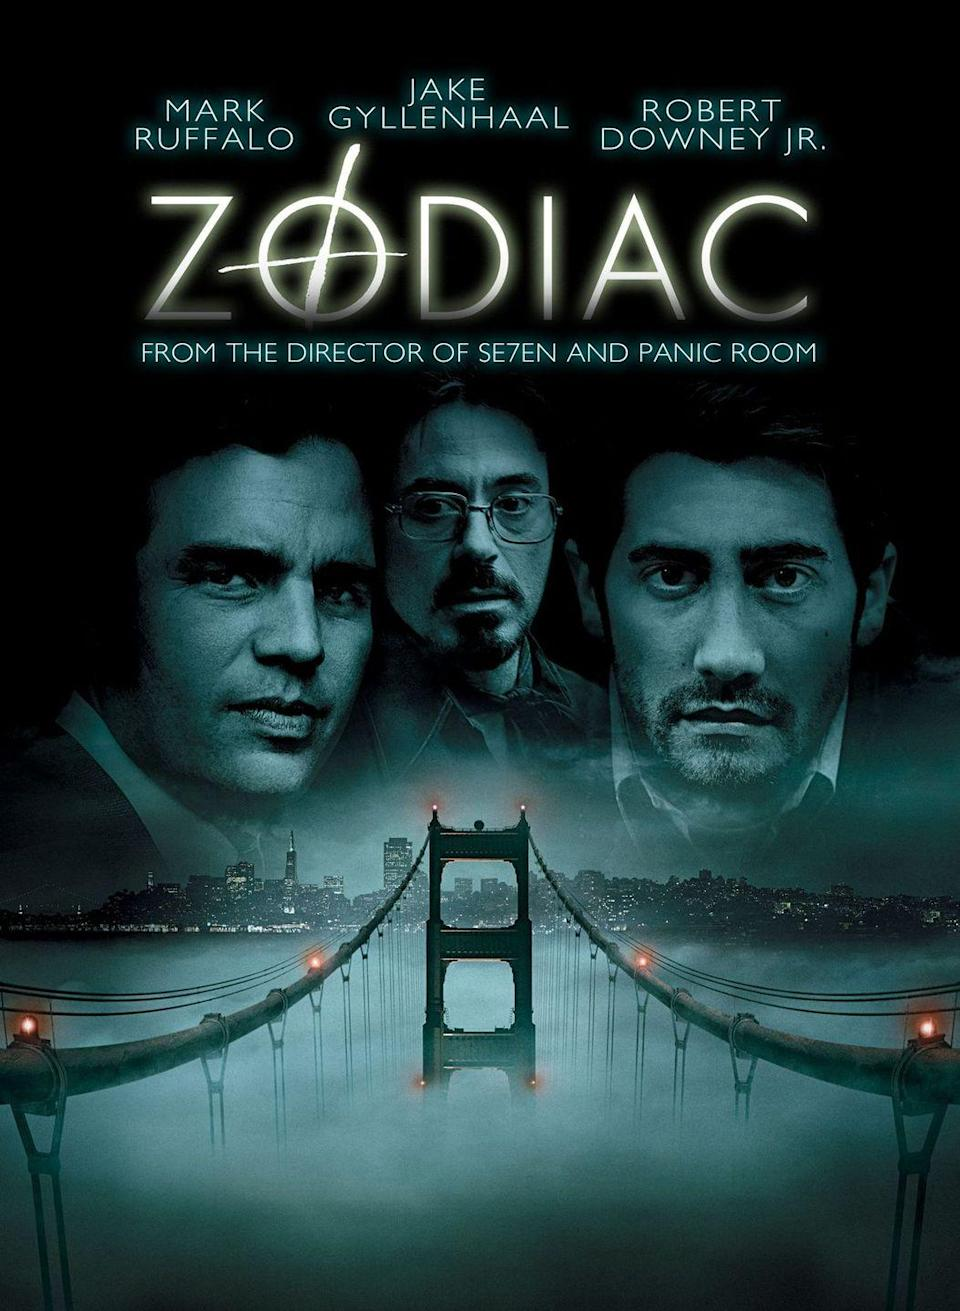 "<p>Based on the real-life unsolved murders of the Zodiac Killer, this mystery thriller stars Jake Gyllenhaal, Mark Ruffalo and Robert Downey Jr. as detectives and journalists who become obsessed with tracking down the serial killer's identity. </p><p><a class=""link rapid-noclick-resp"" href=""https://www.amazon.com/Zodiac-Jake-Gyllenhaal/dp/B07D6Z4Z43?tag=syn-yahoo-20&ascsubtag=%5Bartid%7C10055.g.34396232%5Bsrc%7Cyahoo-us"" rel=""nofollow noopener"" target=""_blank"" data-ylk=""slk:WATCH ON AMAZON"">WATCH ON AMAZON</a></p><p><strong>RELATED: </strong><a href=""https://www.goodhousekeeping.com/life/entertainment/g27047877/best-true-crime-documentaries-netflix/"" rel=""nofollow noopener"" target=""_blank"" data-ylk=""slk:25 True Crime Documentaries on Netflix That Are Too Scary for Primetime"" class=""link rapid-noclick-resp"">25 True Crime Documentaries on Netflix That Are Too Scary for Primetime</a></p>"